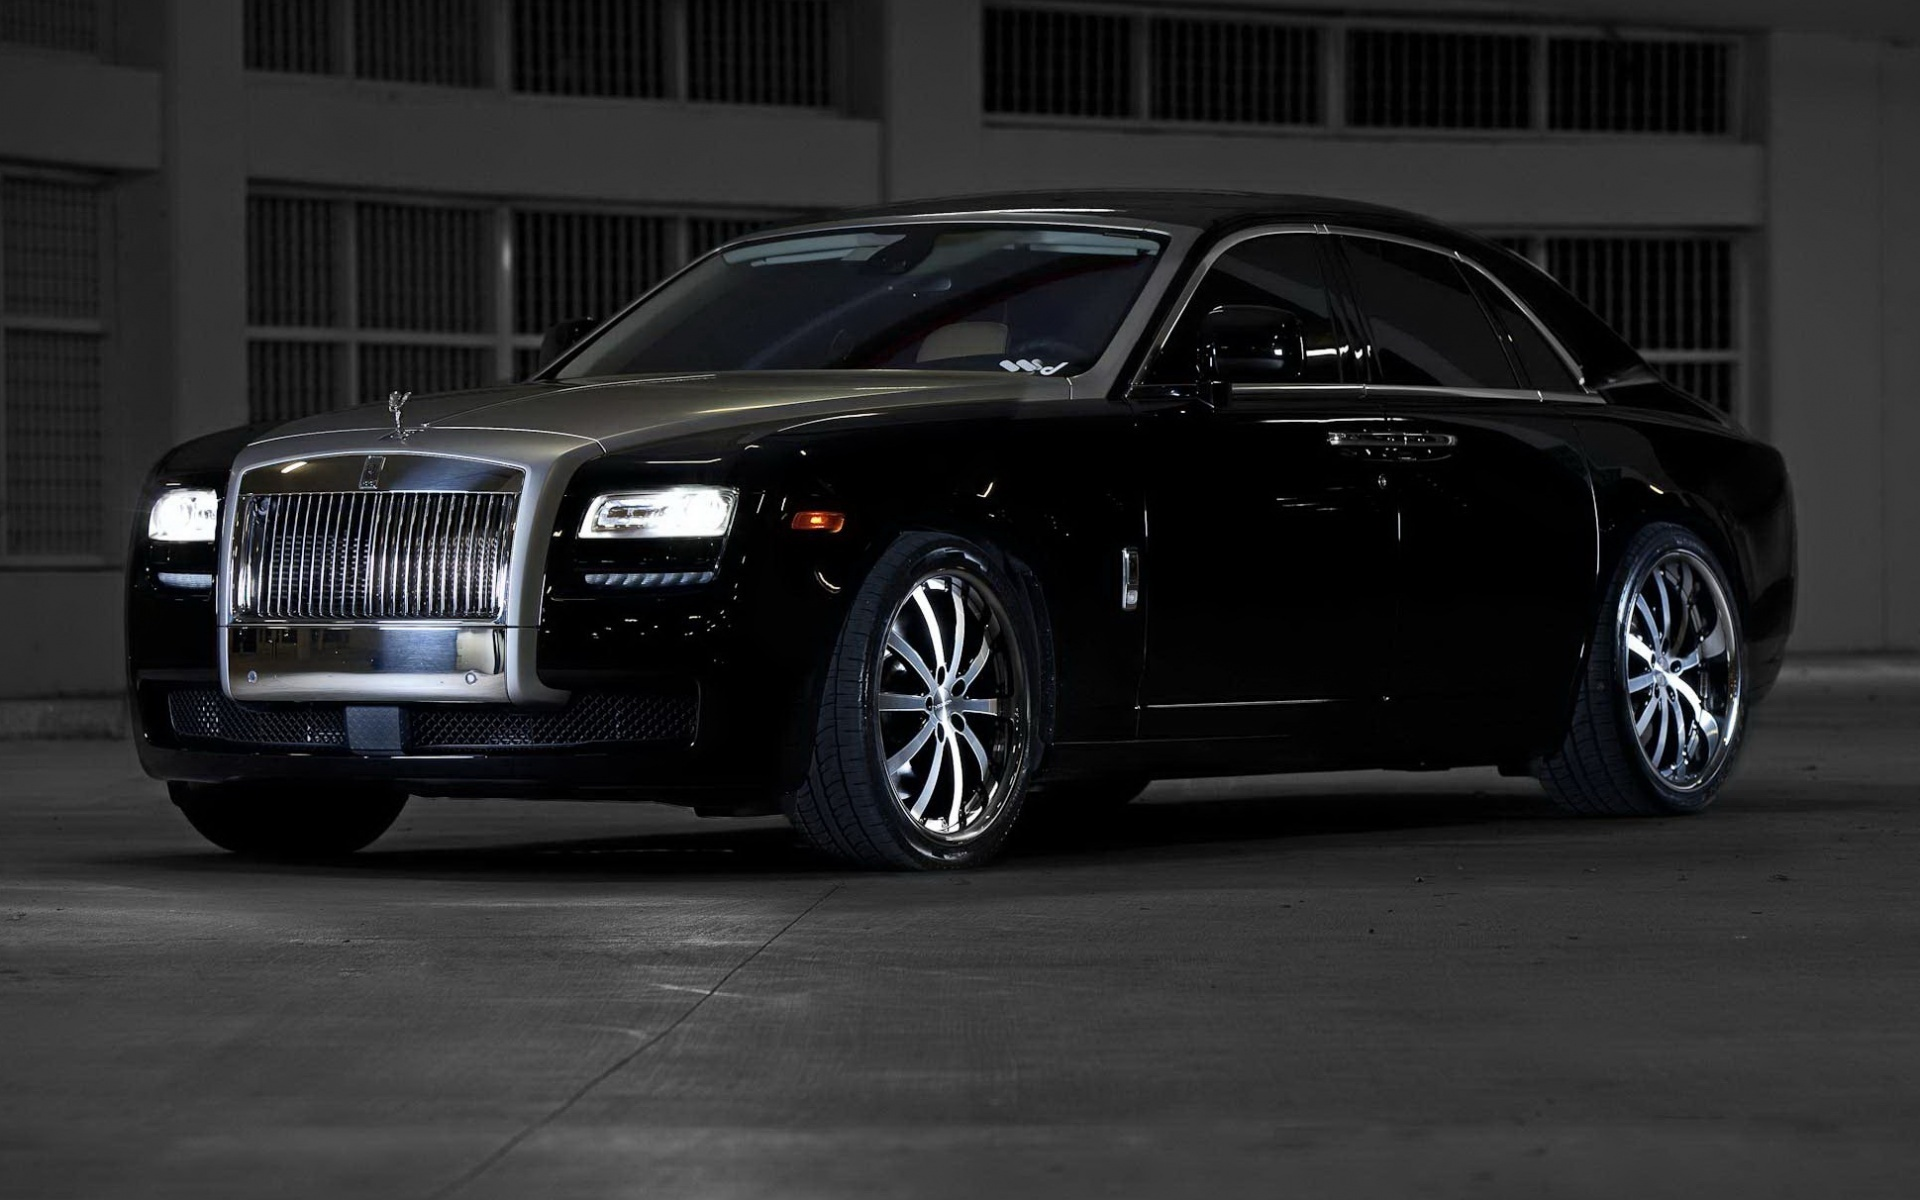 Rolls royce wallpapers pictures images - Royal royce car wallpaper ...